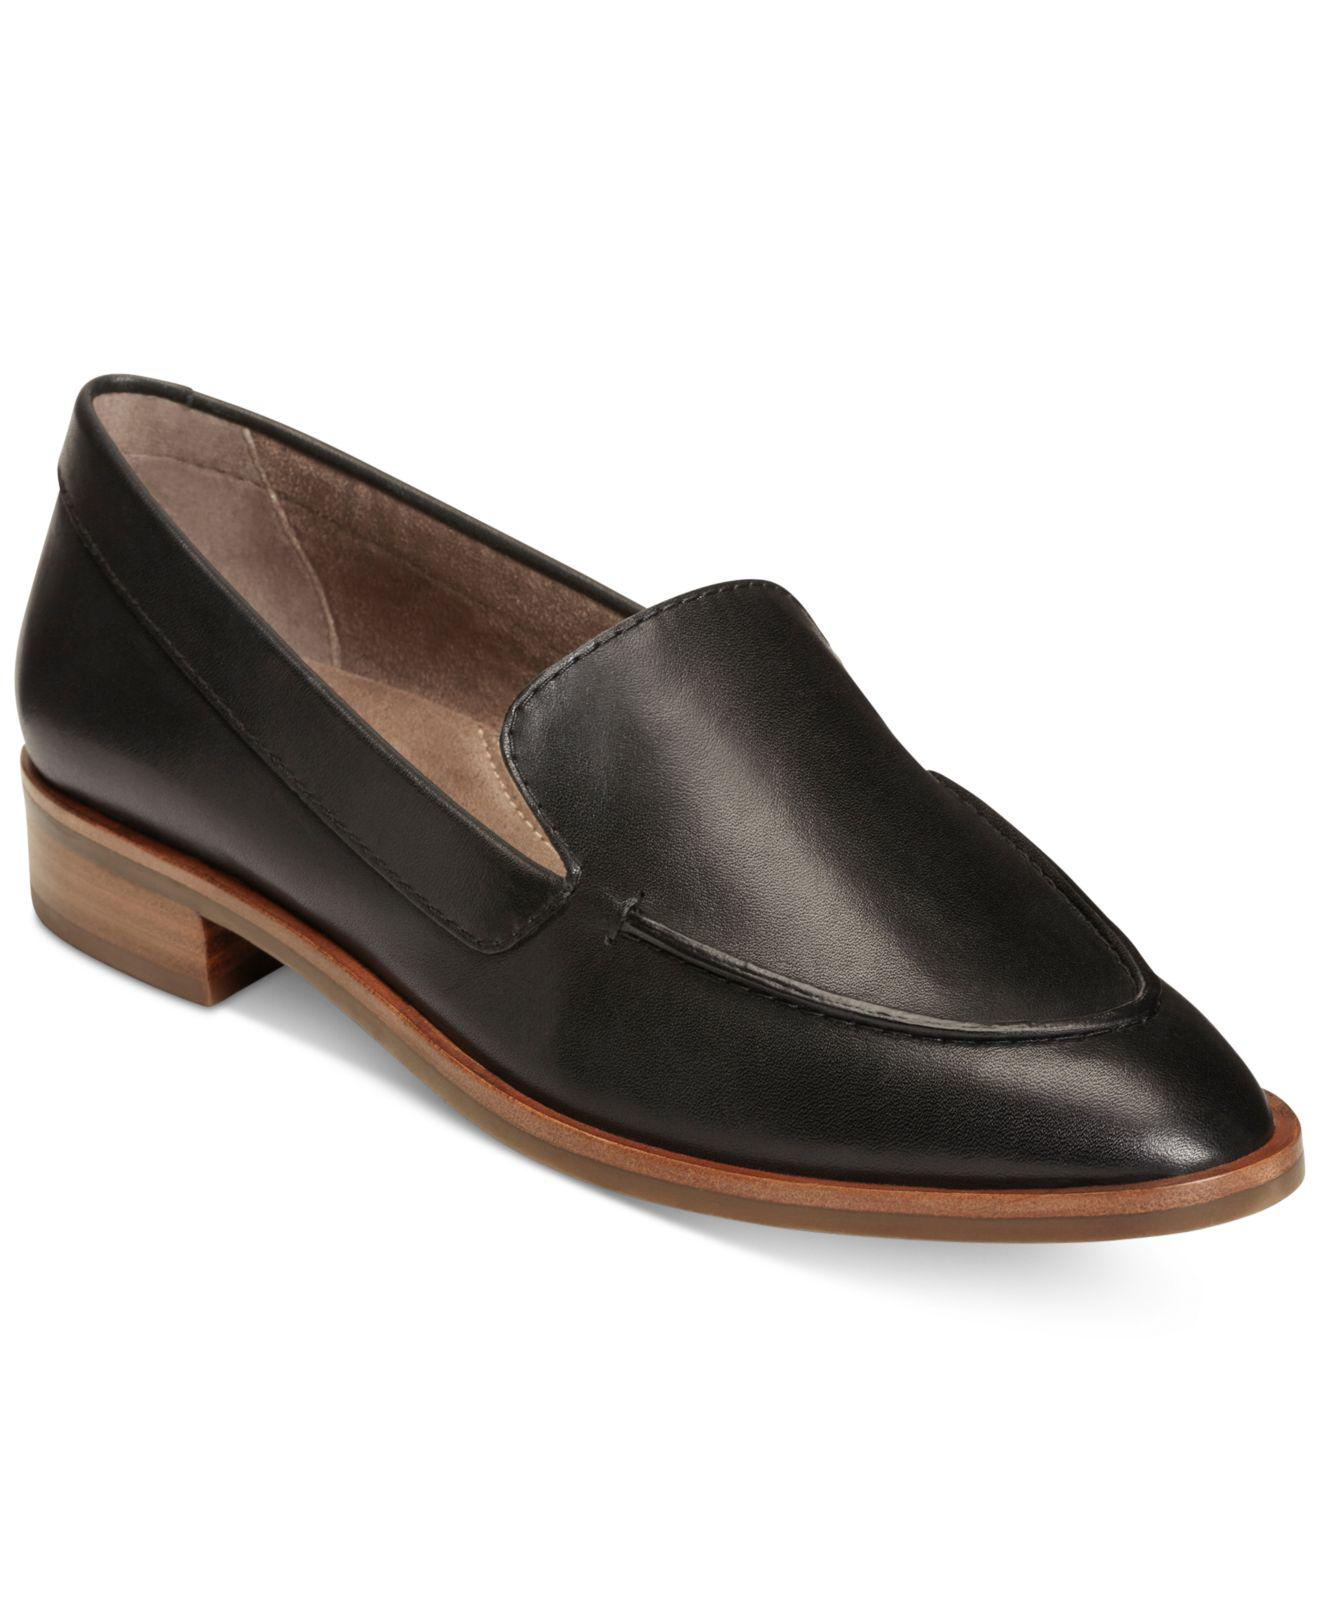 81240e7f5d8b Lyst - Aerosoles East Side Loafers in Black - Save 22%